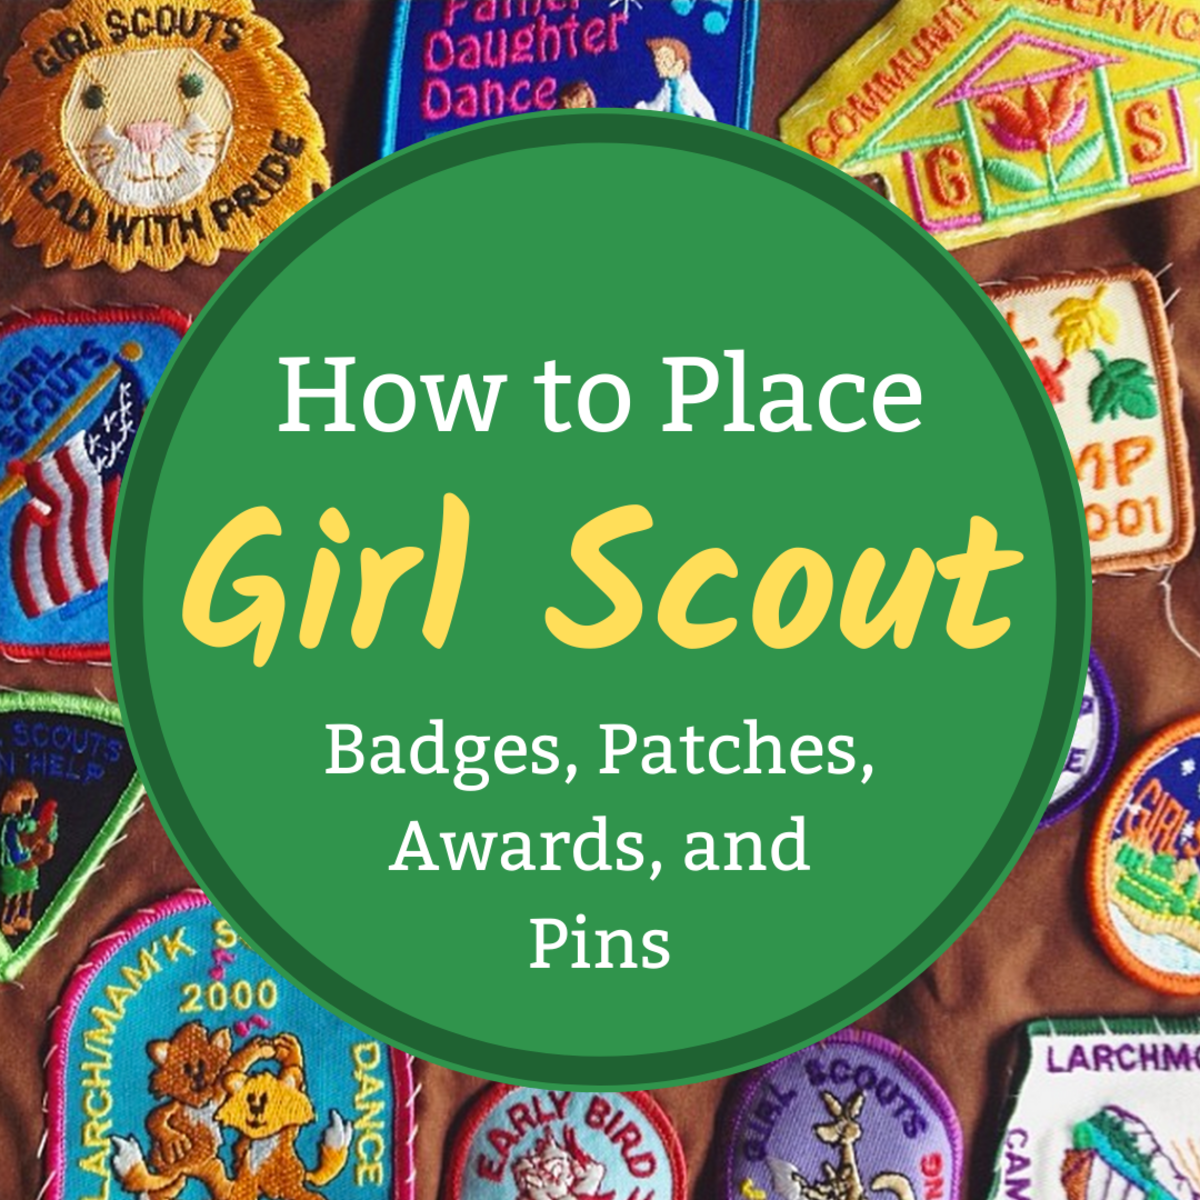 Learn where to place different Girl Scout awards and emblems on a sash or vest, including the troop numbers, Girl Scout membership pin, and skill-building badges.